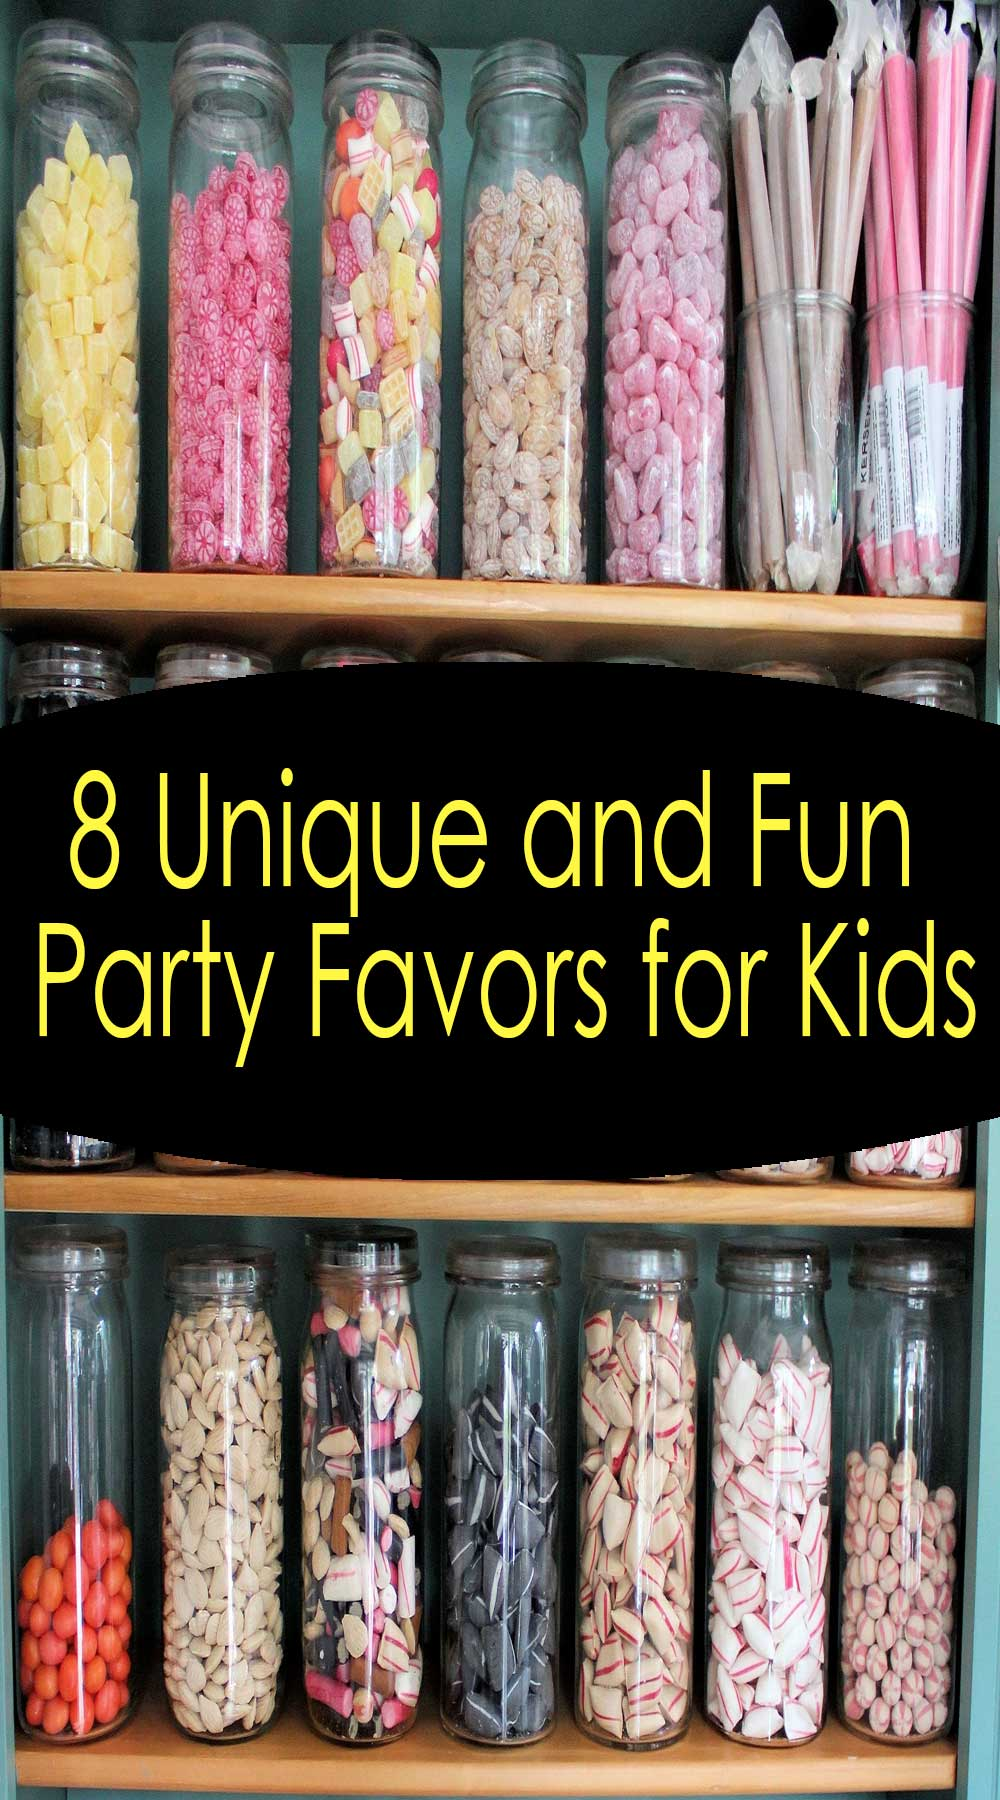 8 Unique and Fun Party Favors for Kids